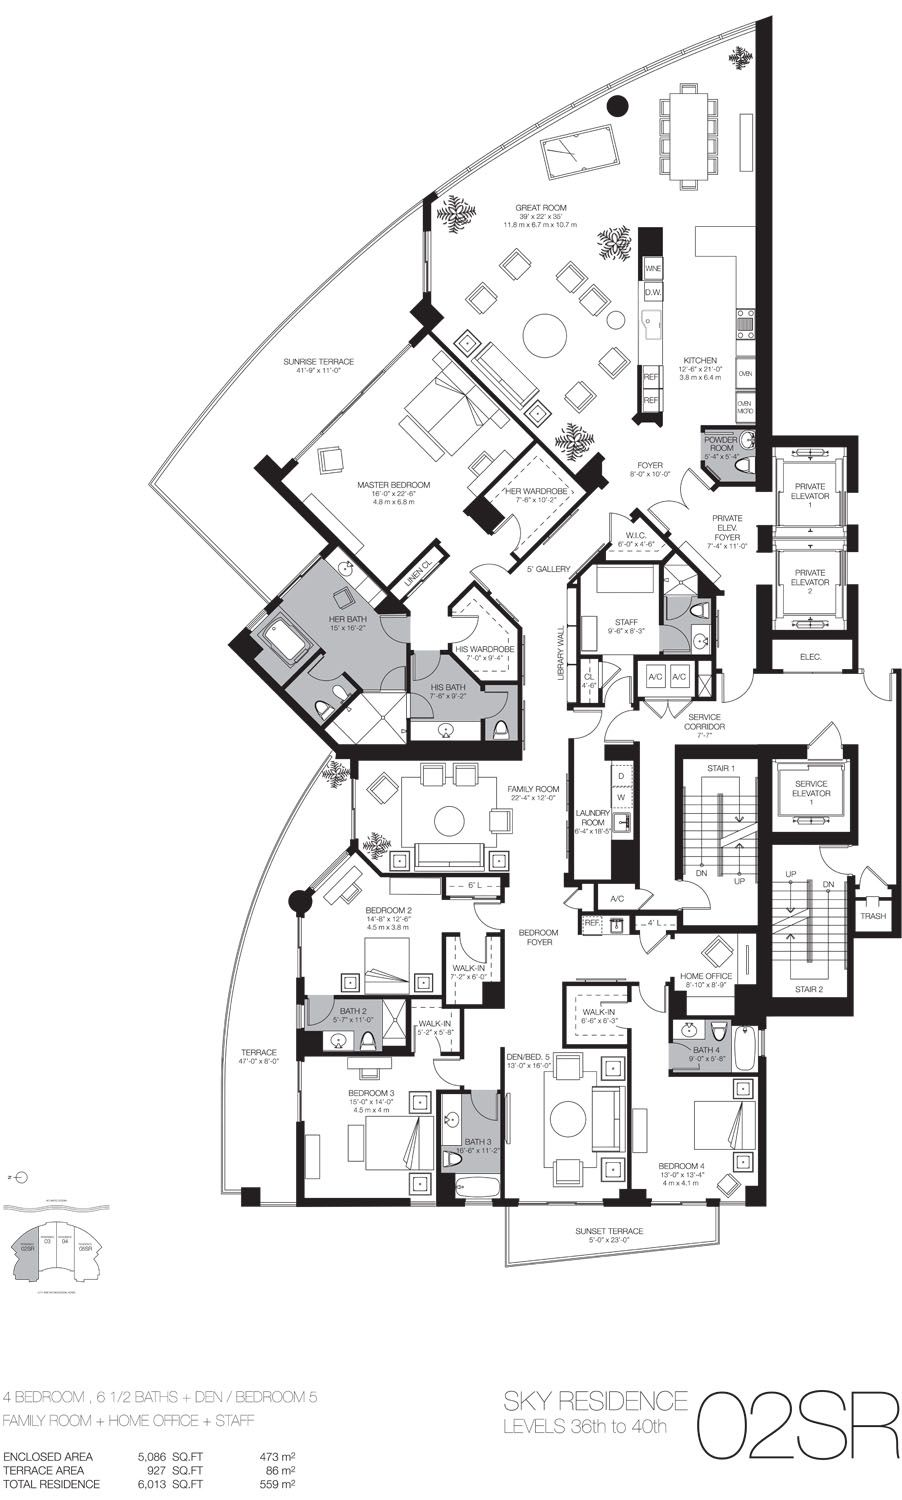 Luxury Beach Home Floor Plans – Luxury Estate Home Floor Plans